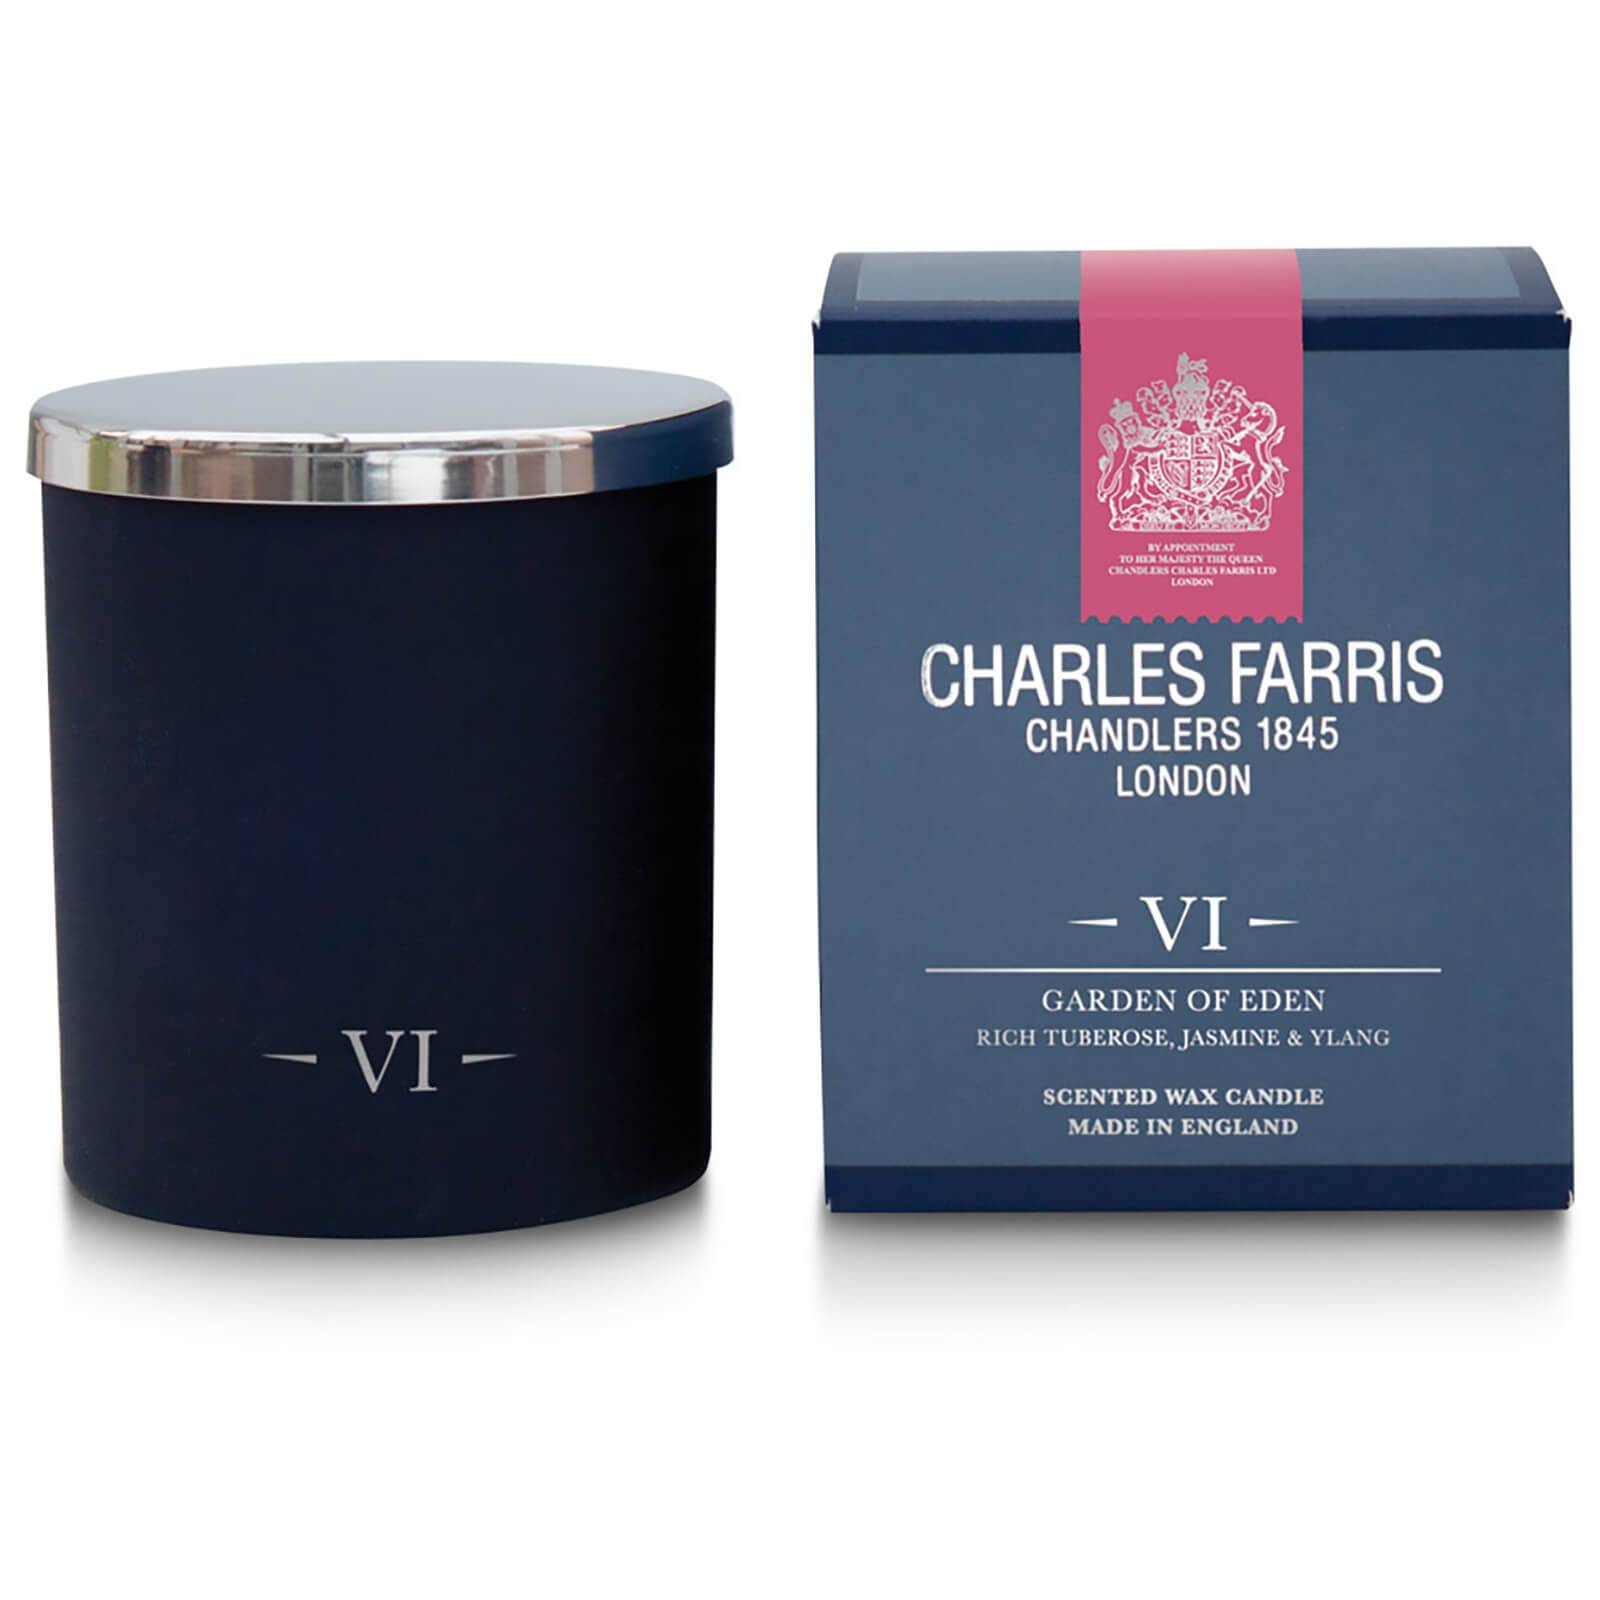 Charles Farris Signature Garden of Eden Candle 600g